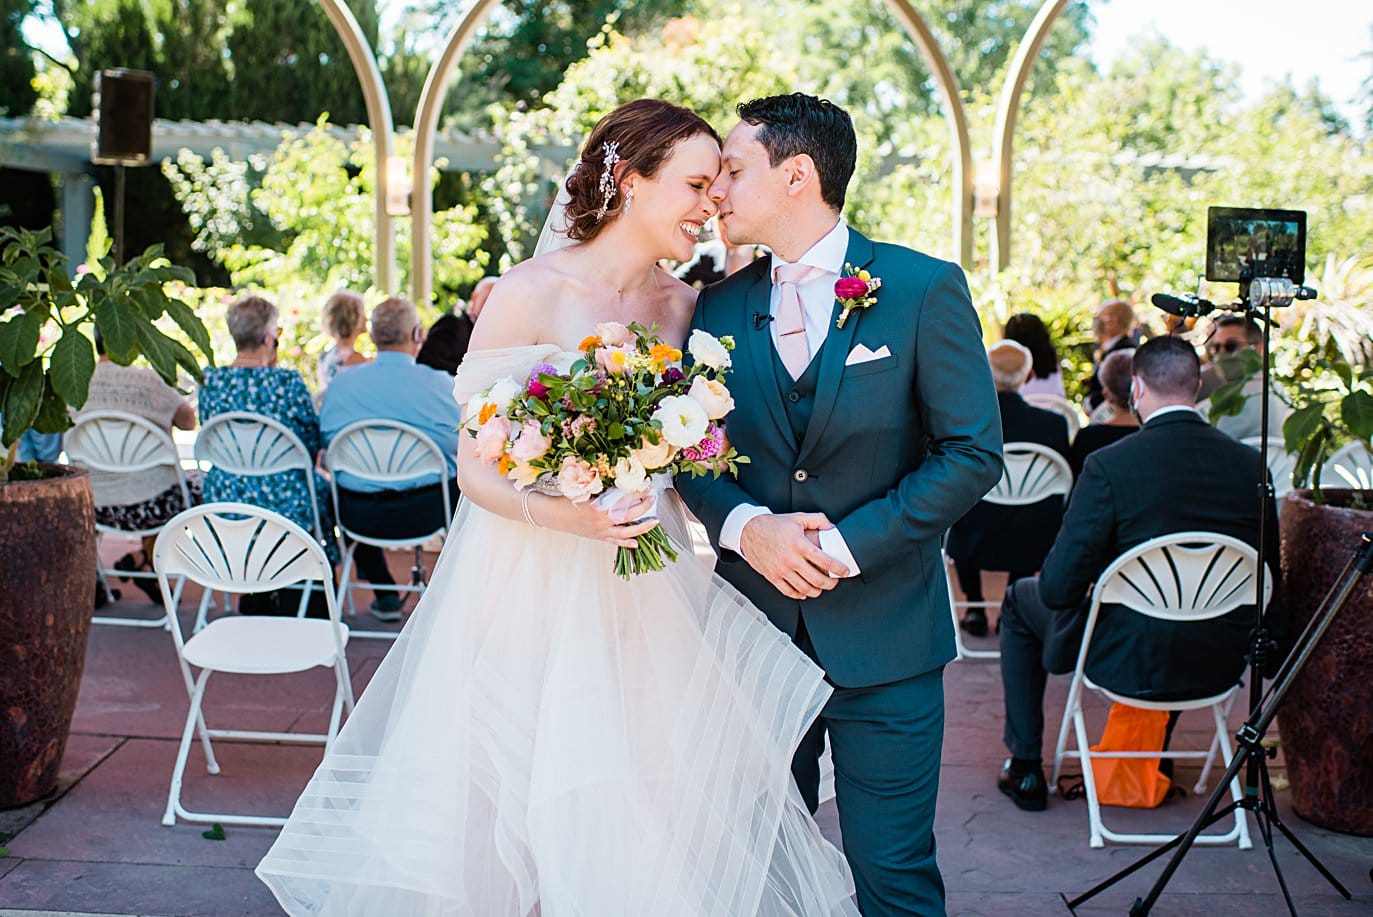 bride and groom walk back down the aisle after ceremony at Denver Botanic Gardens microwedding by Denver wedding photographer Jennie Crate